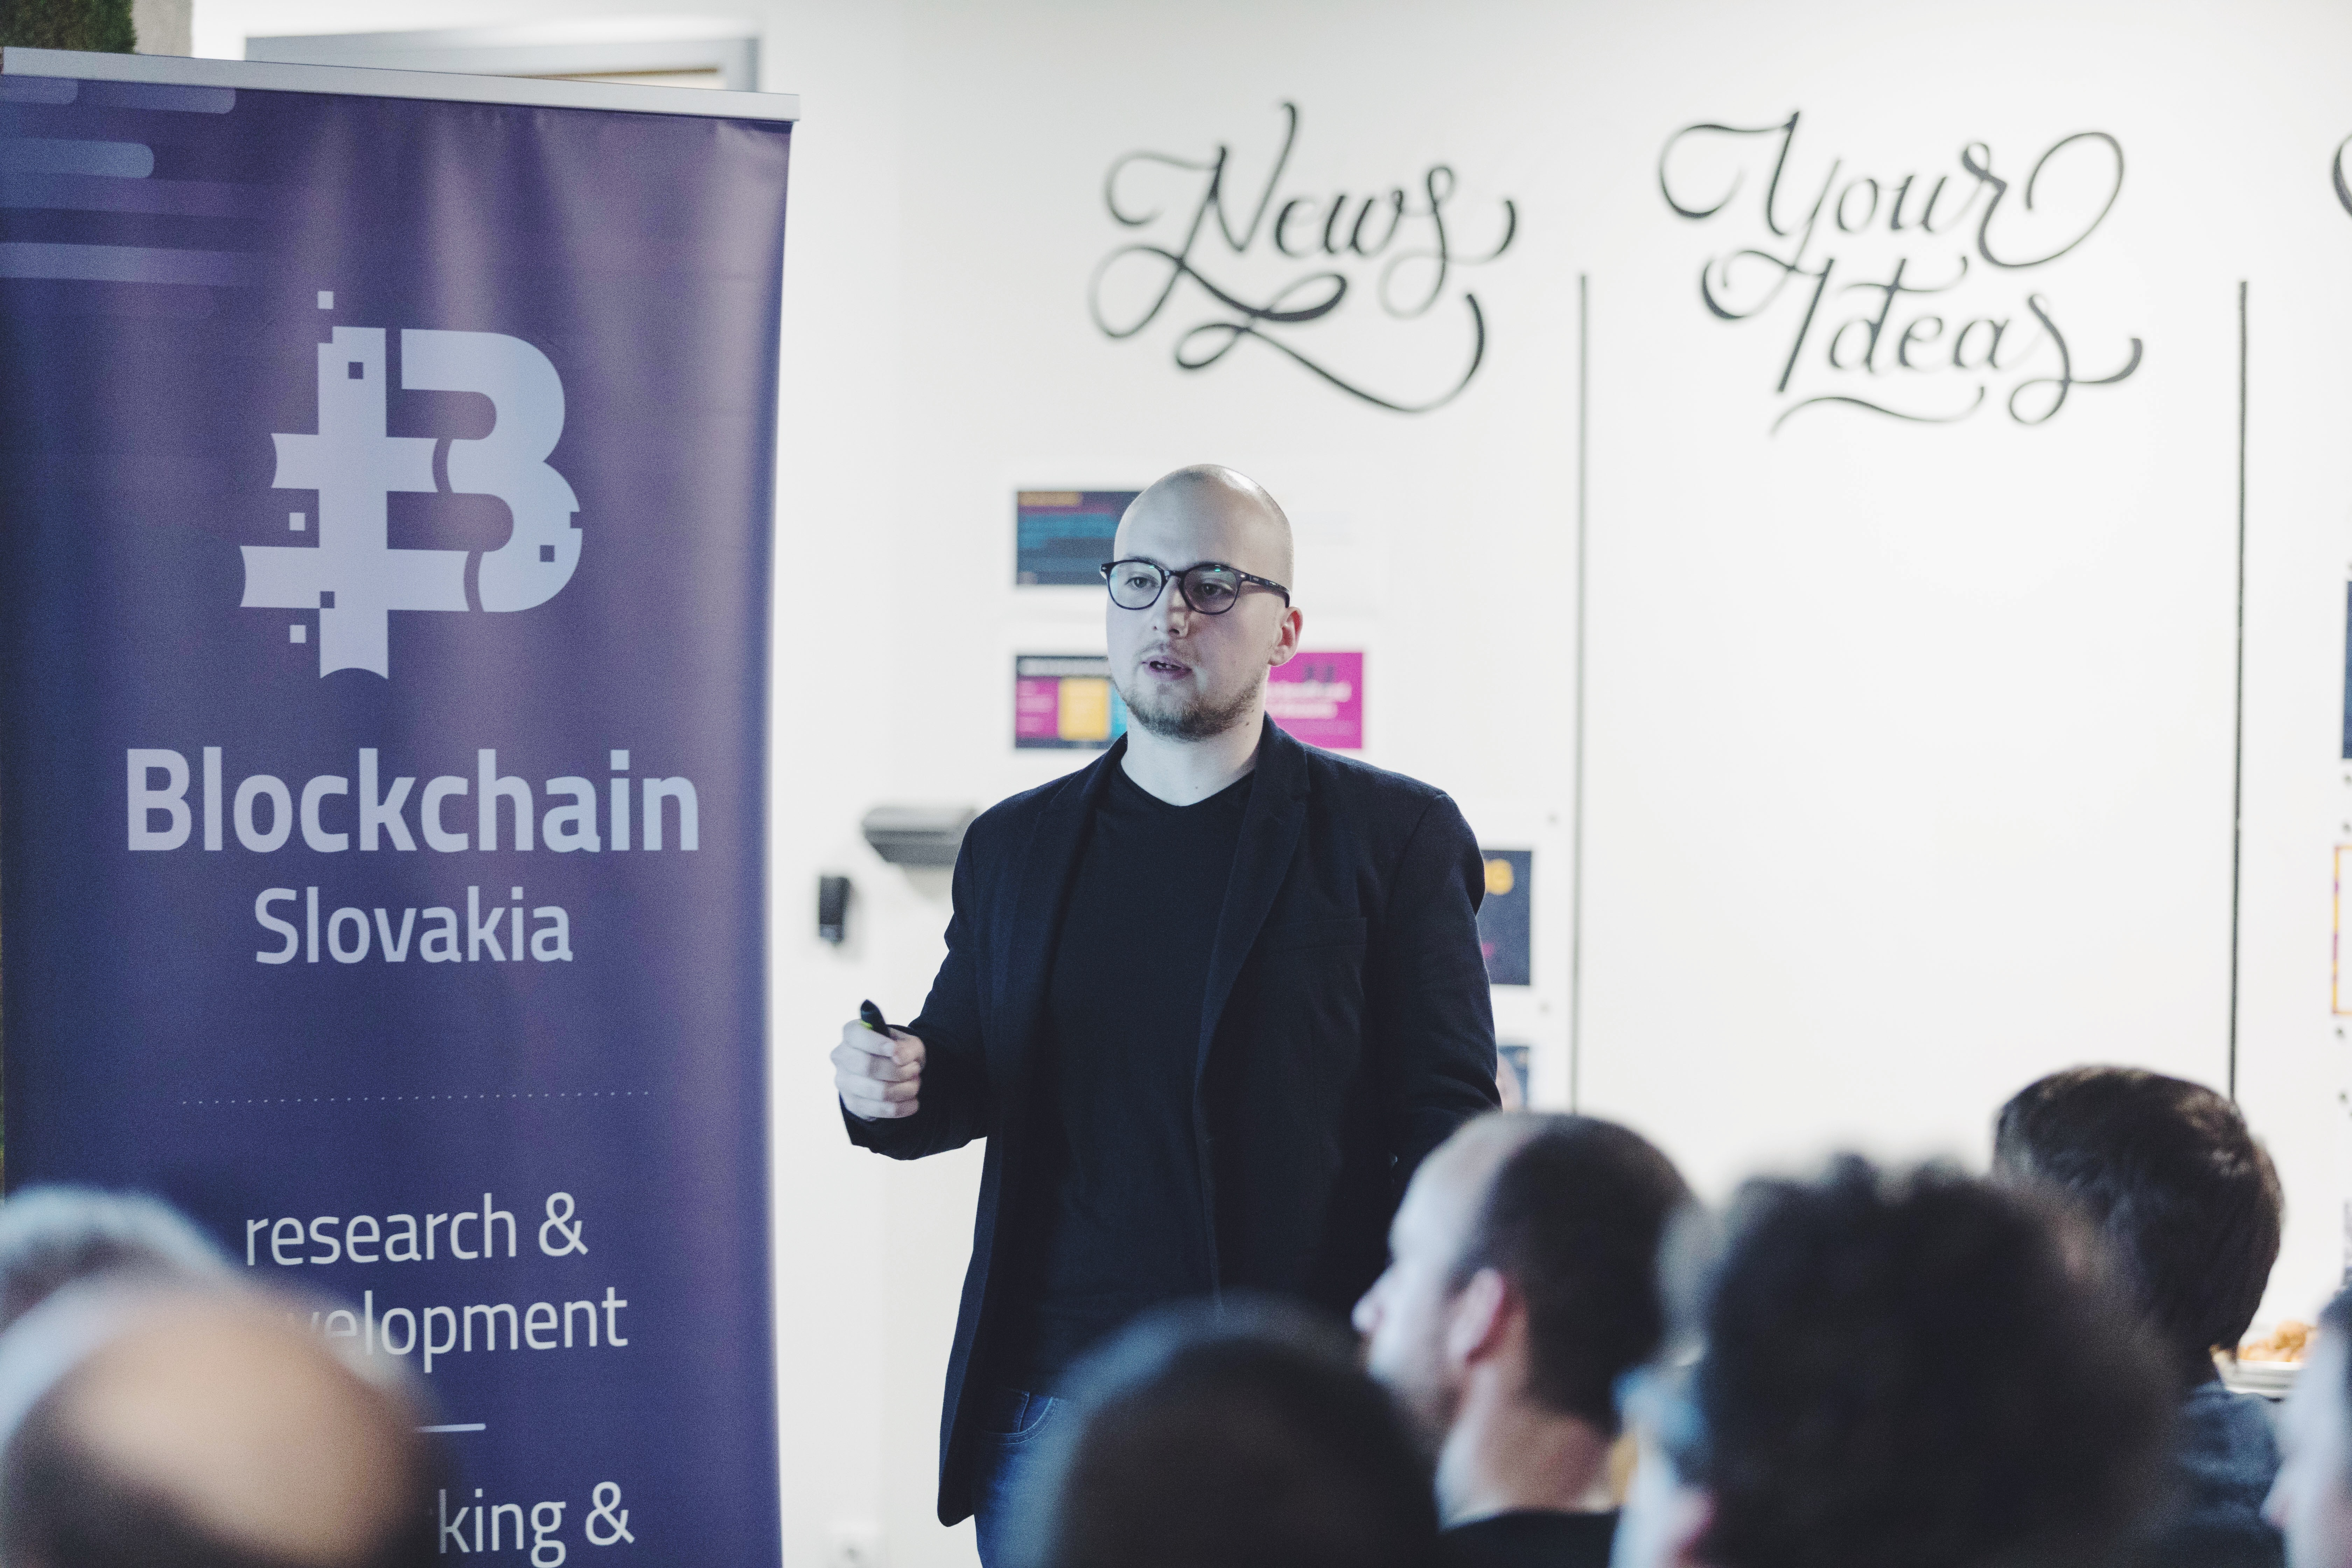 Blockchain Slovakia - Processed with VSCO with f2 preset